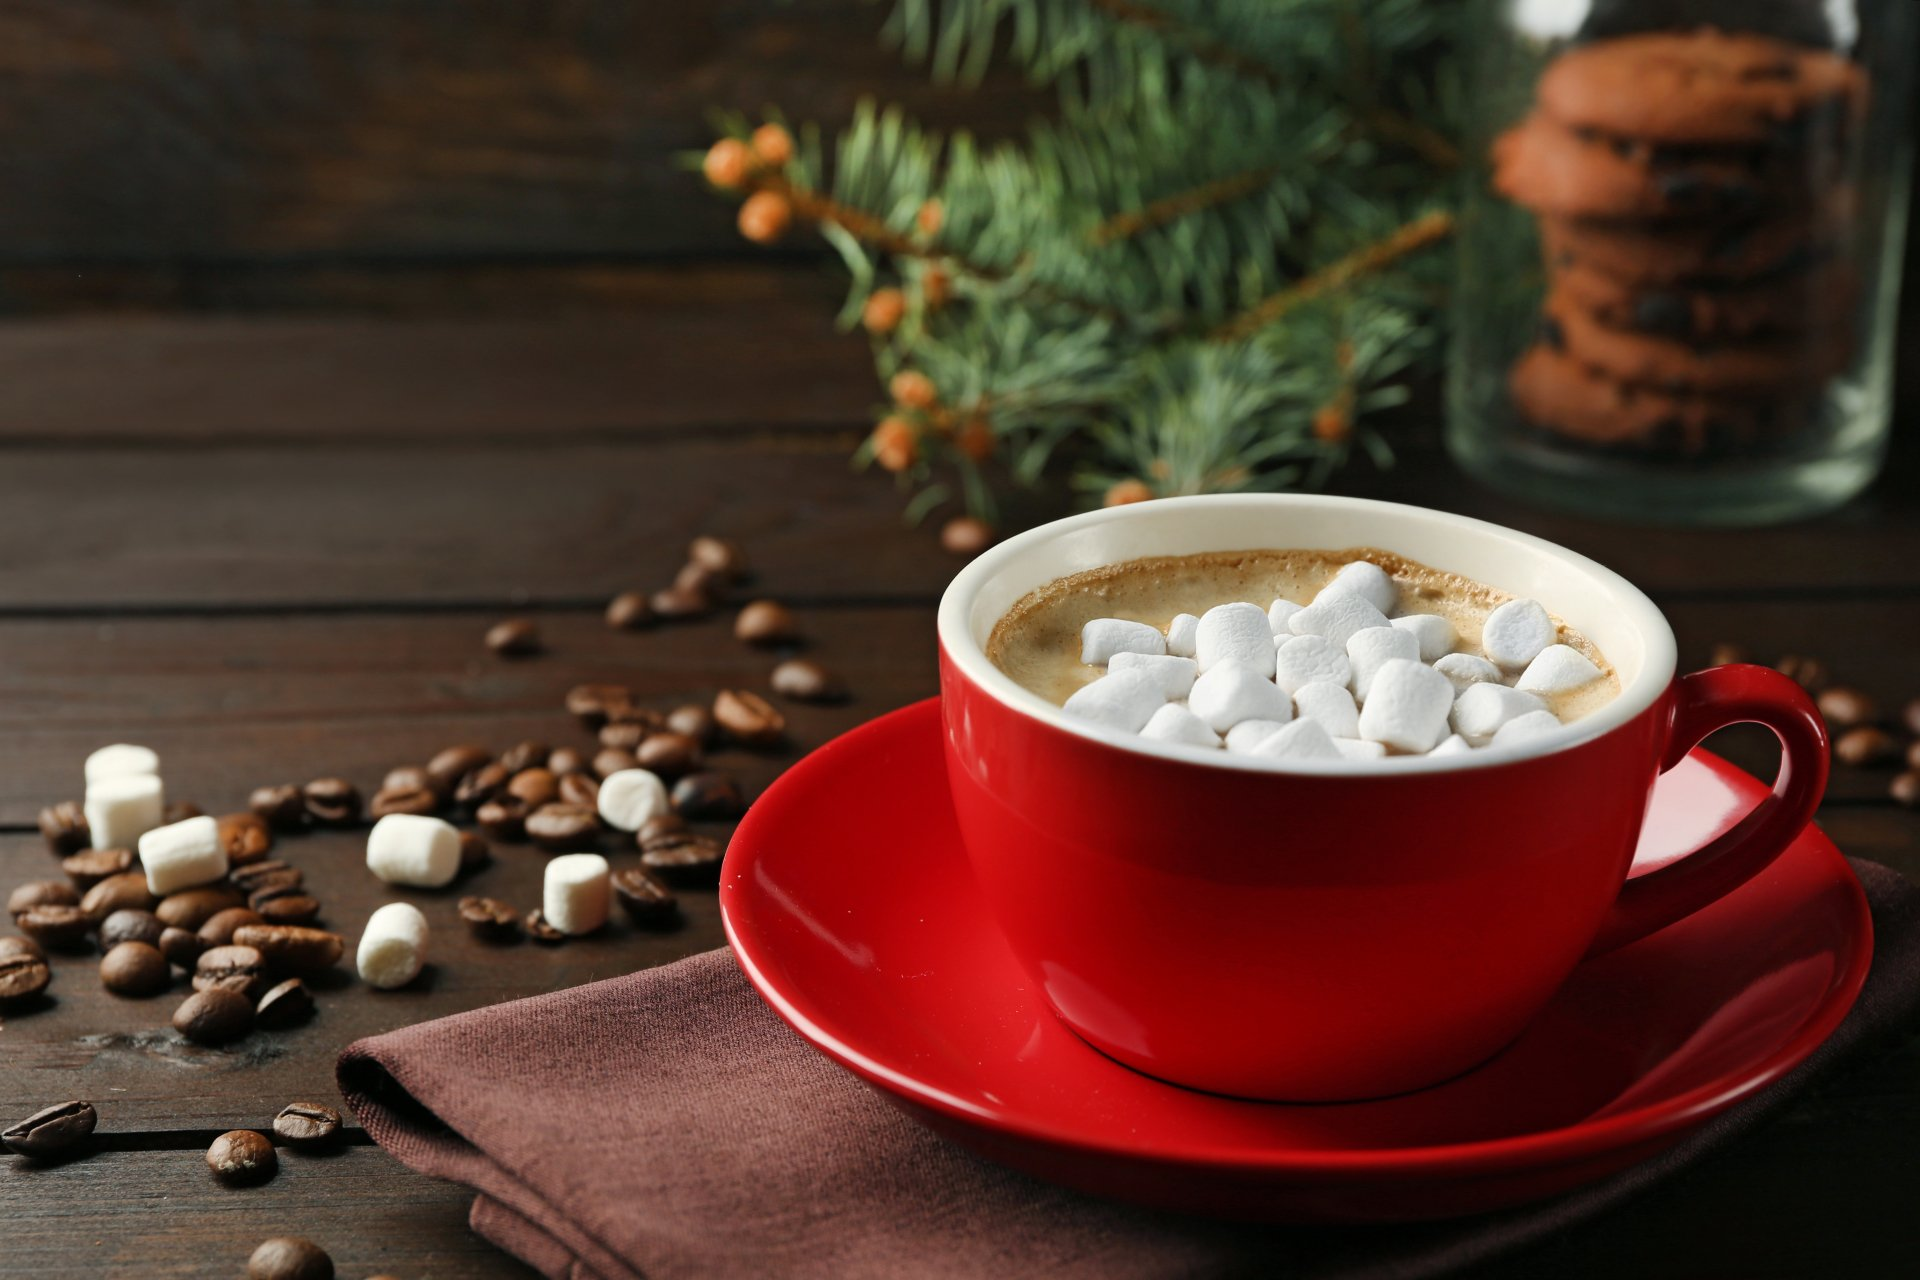 Food - Hot Chocolate  Coffee Beans Cup Marshmallow Wallpaper